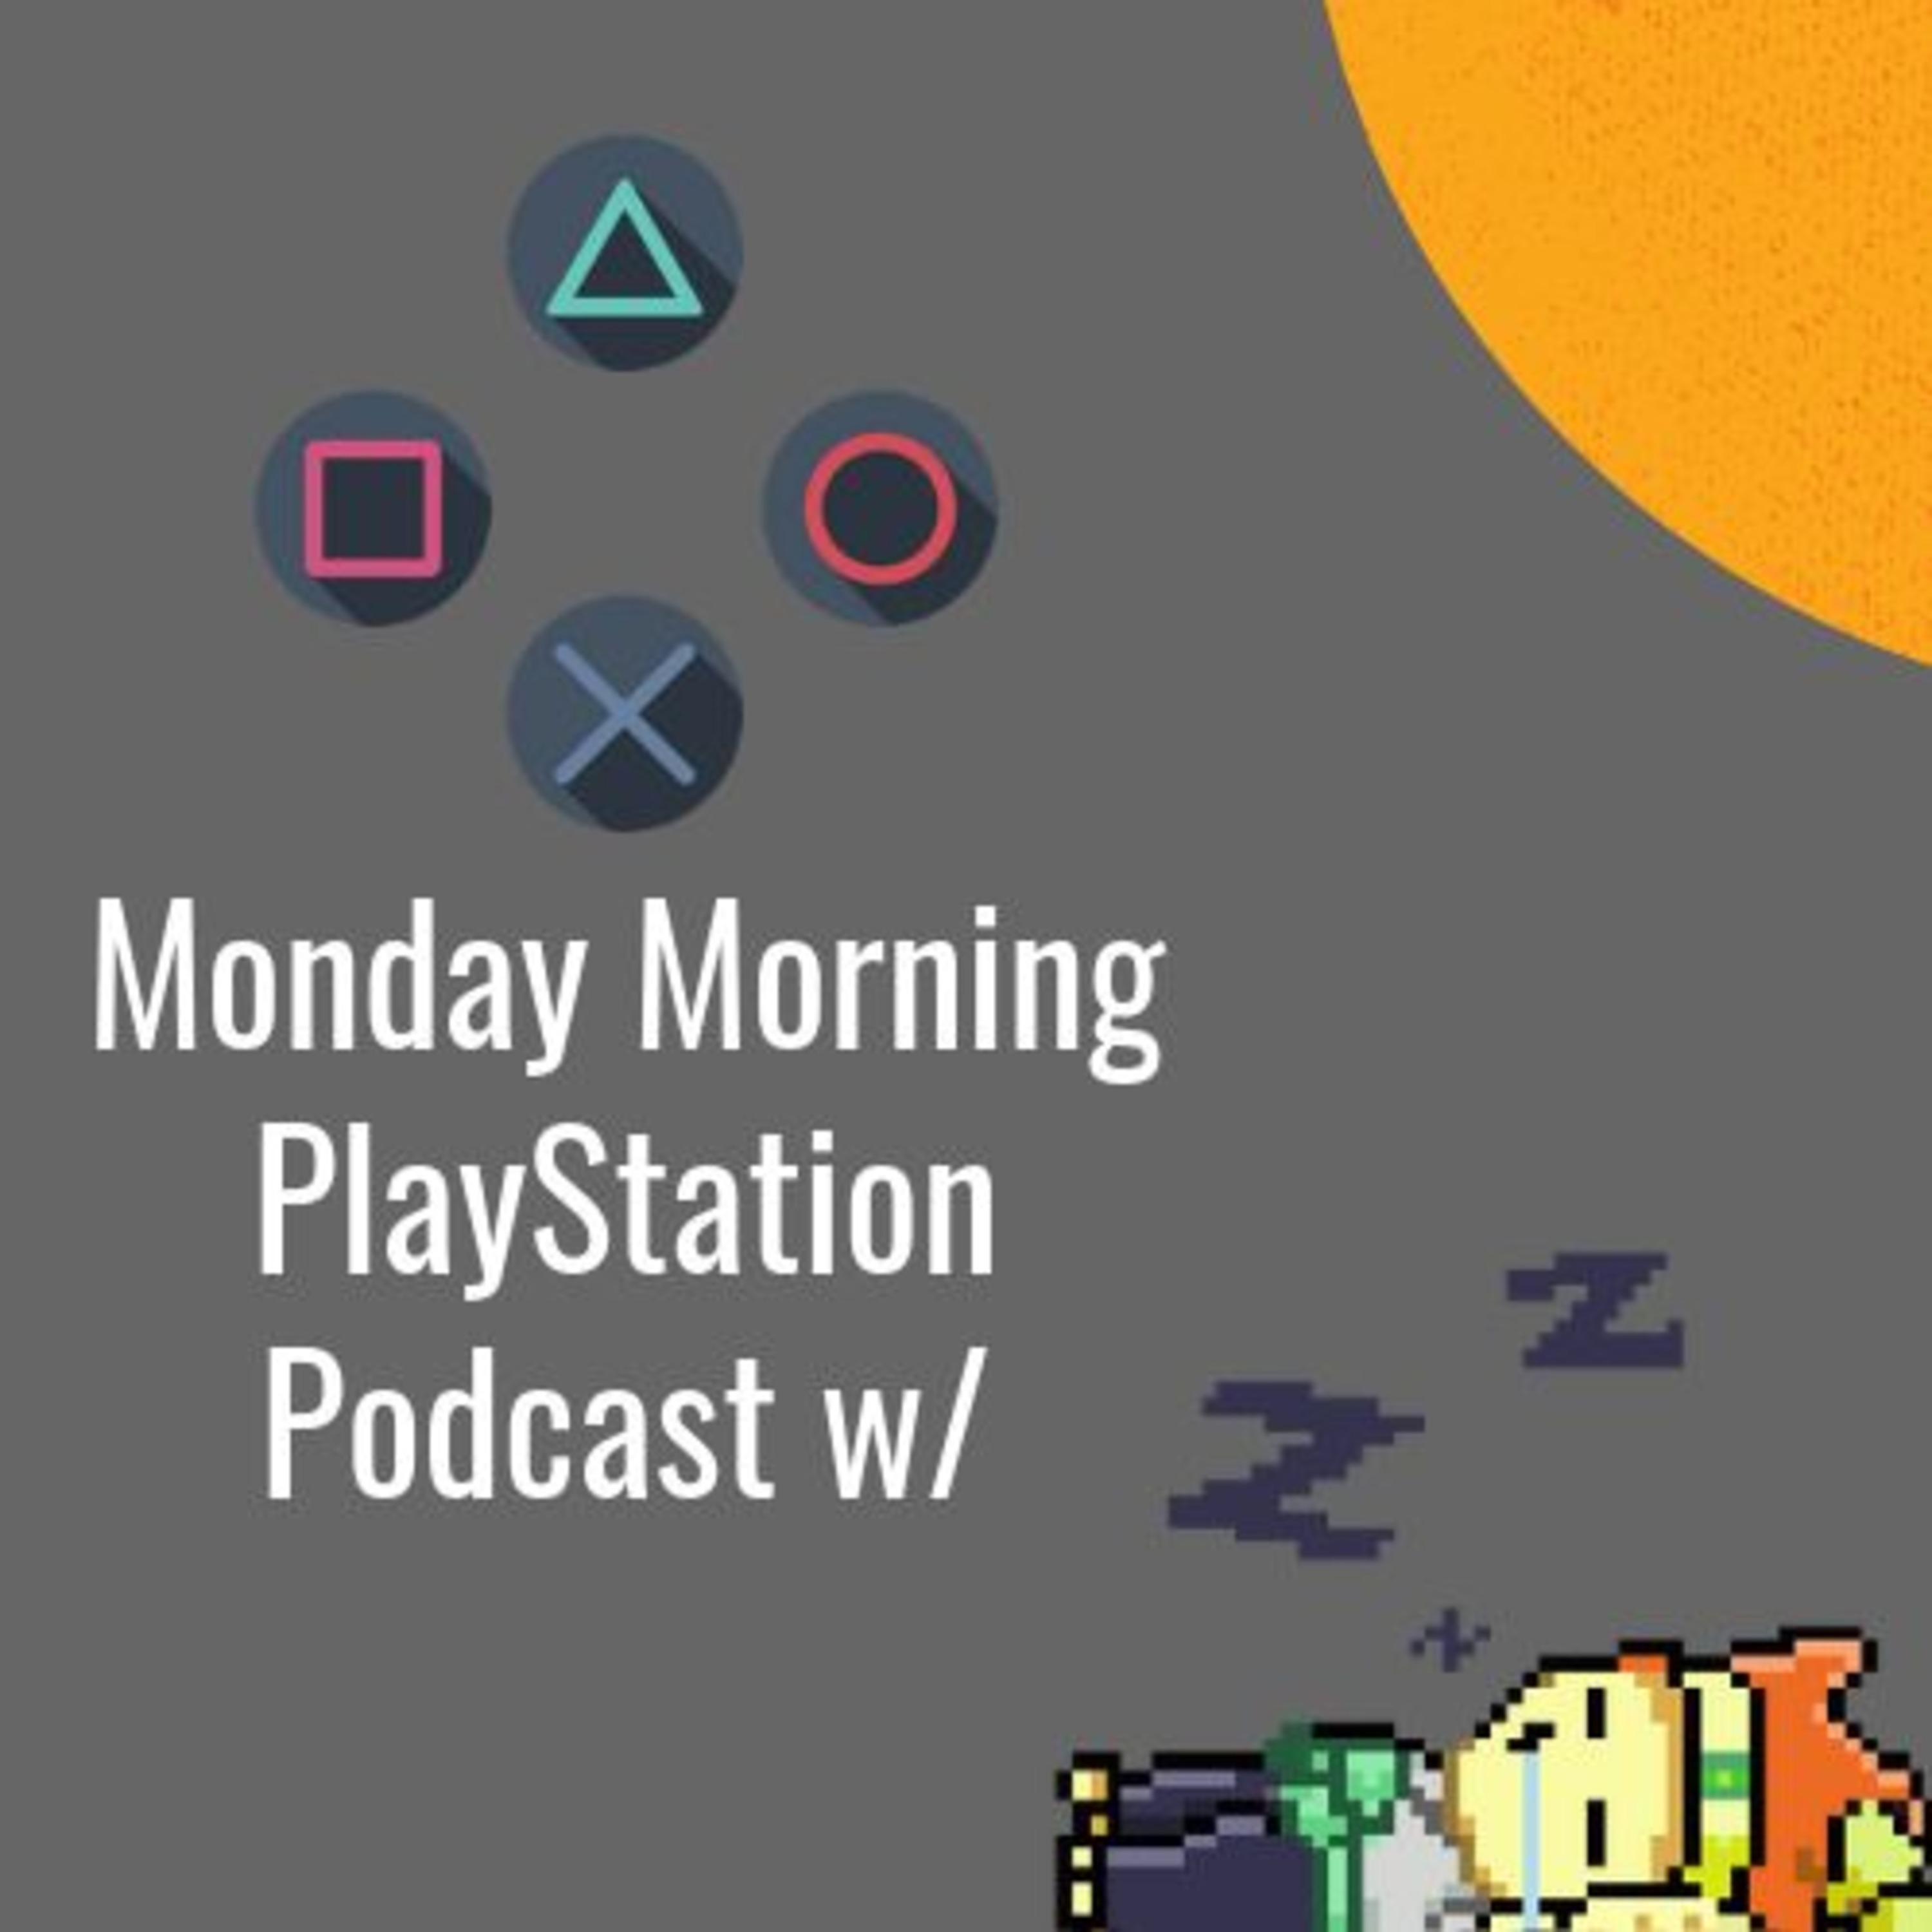 I'M BACK | the Monday Morning Playstation Podcast W/ Dylan Lepore Ep. 17